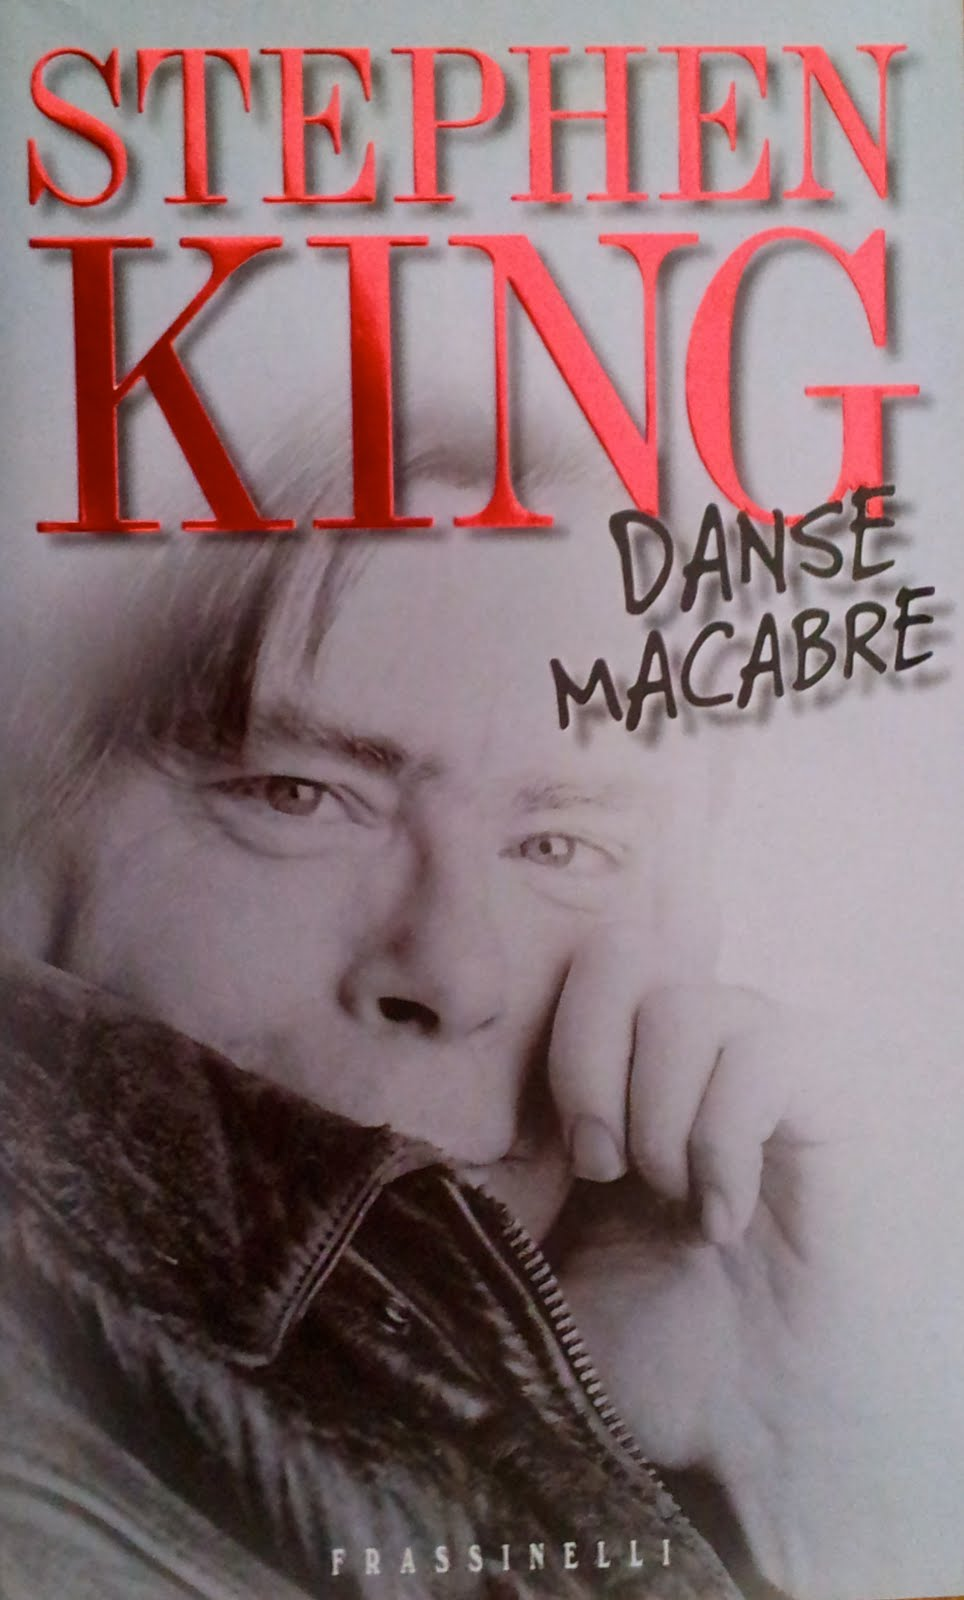 danse macabre essay by stephen king Popular epub, danse macabre by stephen king (2012-10-11) by stephen king this is very good and becomes the main topic to read, the readers are very takjup and always take inspiration from the contents of the book danse macabre by stephen king (2012-10-11), essay by stephen king.